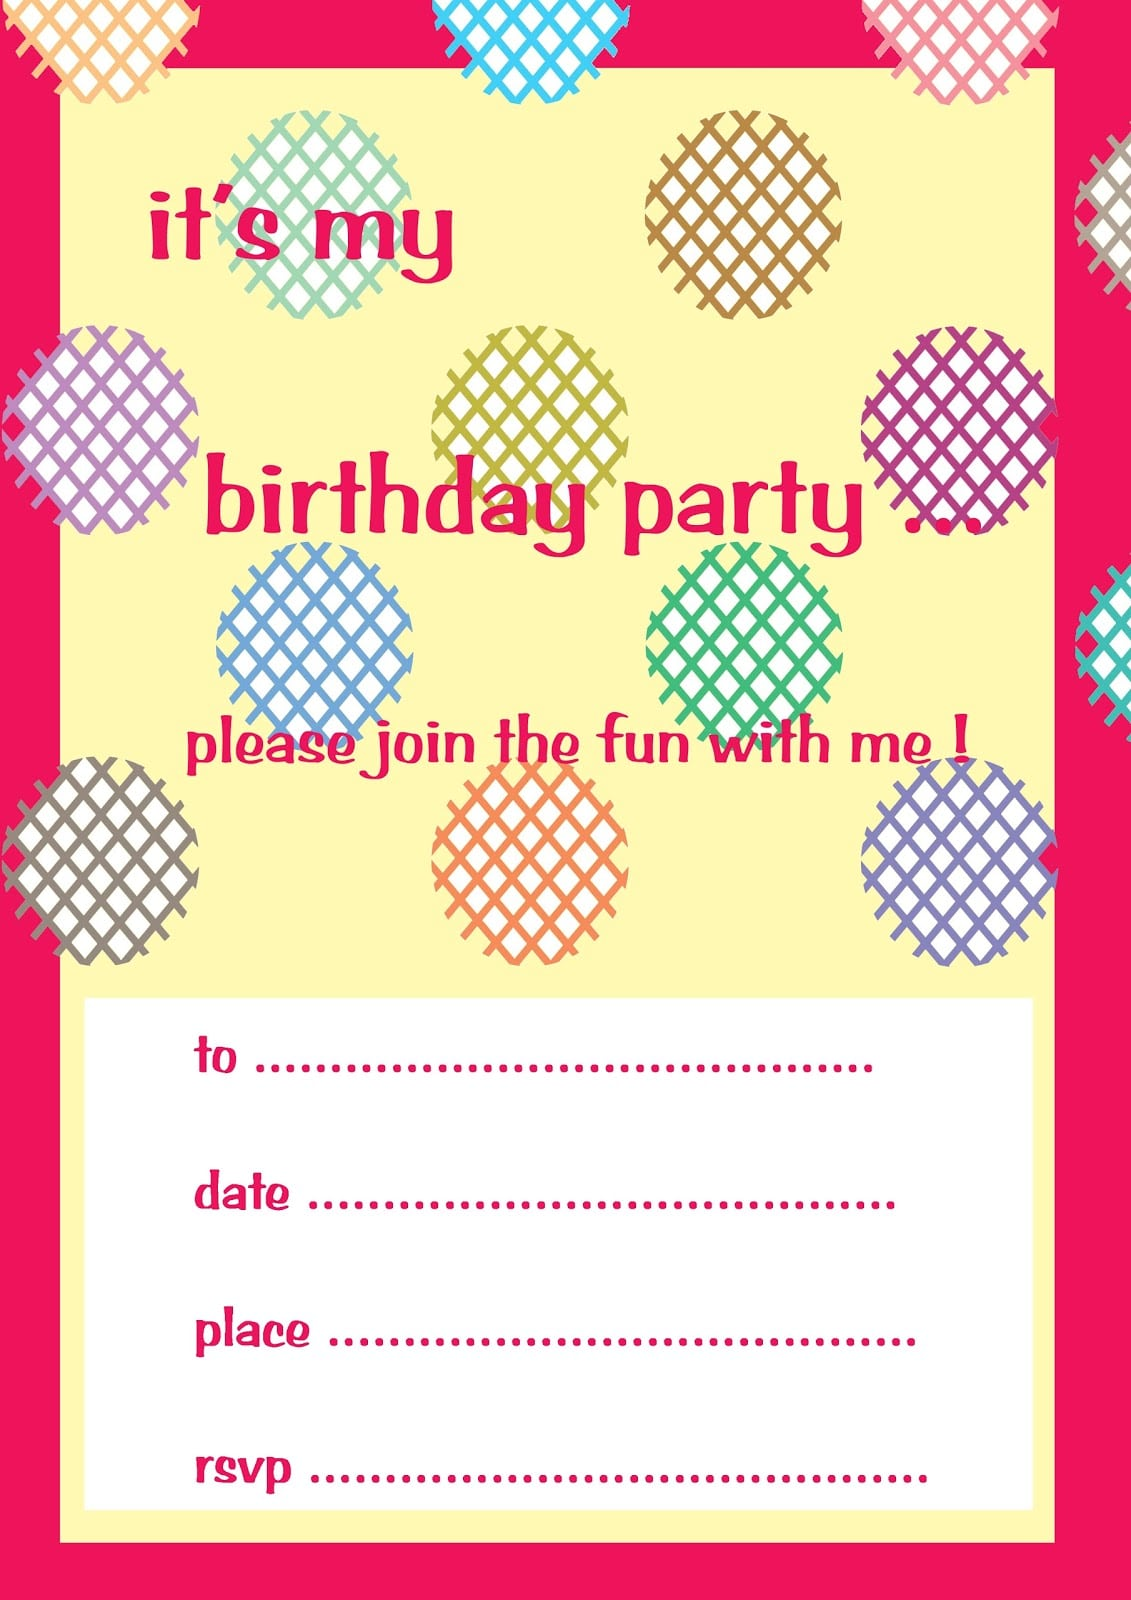 Pictures Of Invitation Cards For Birthday